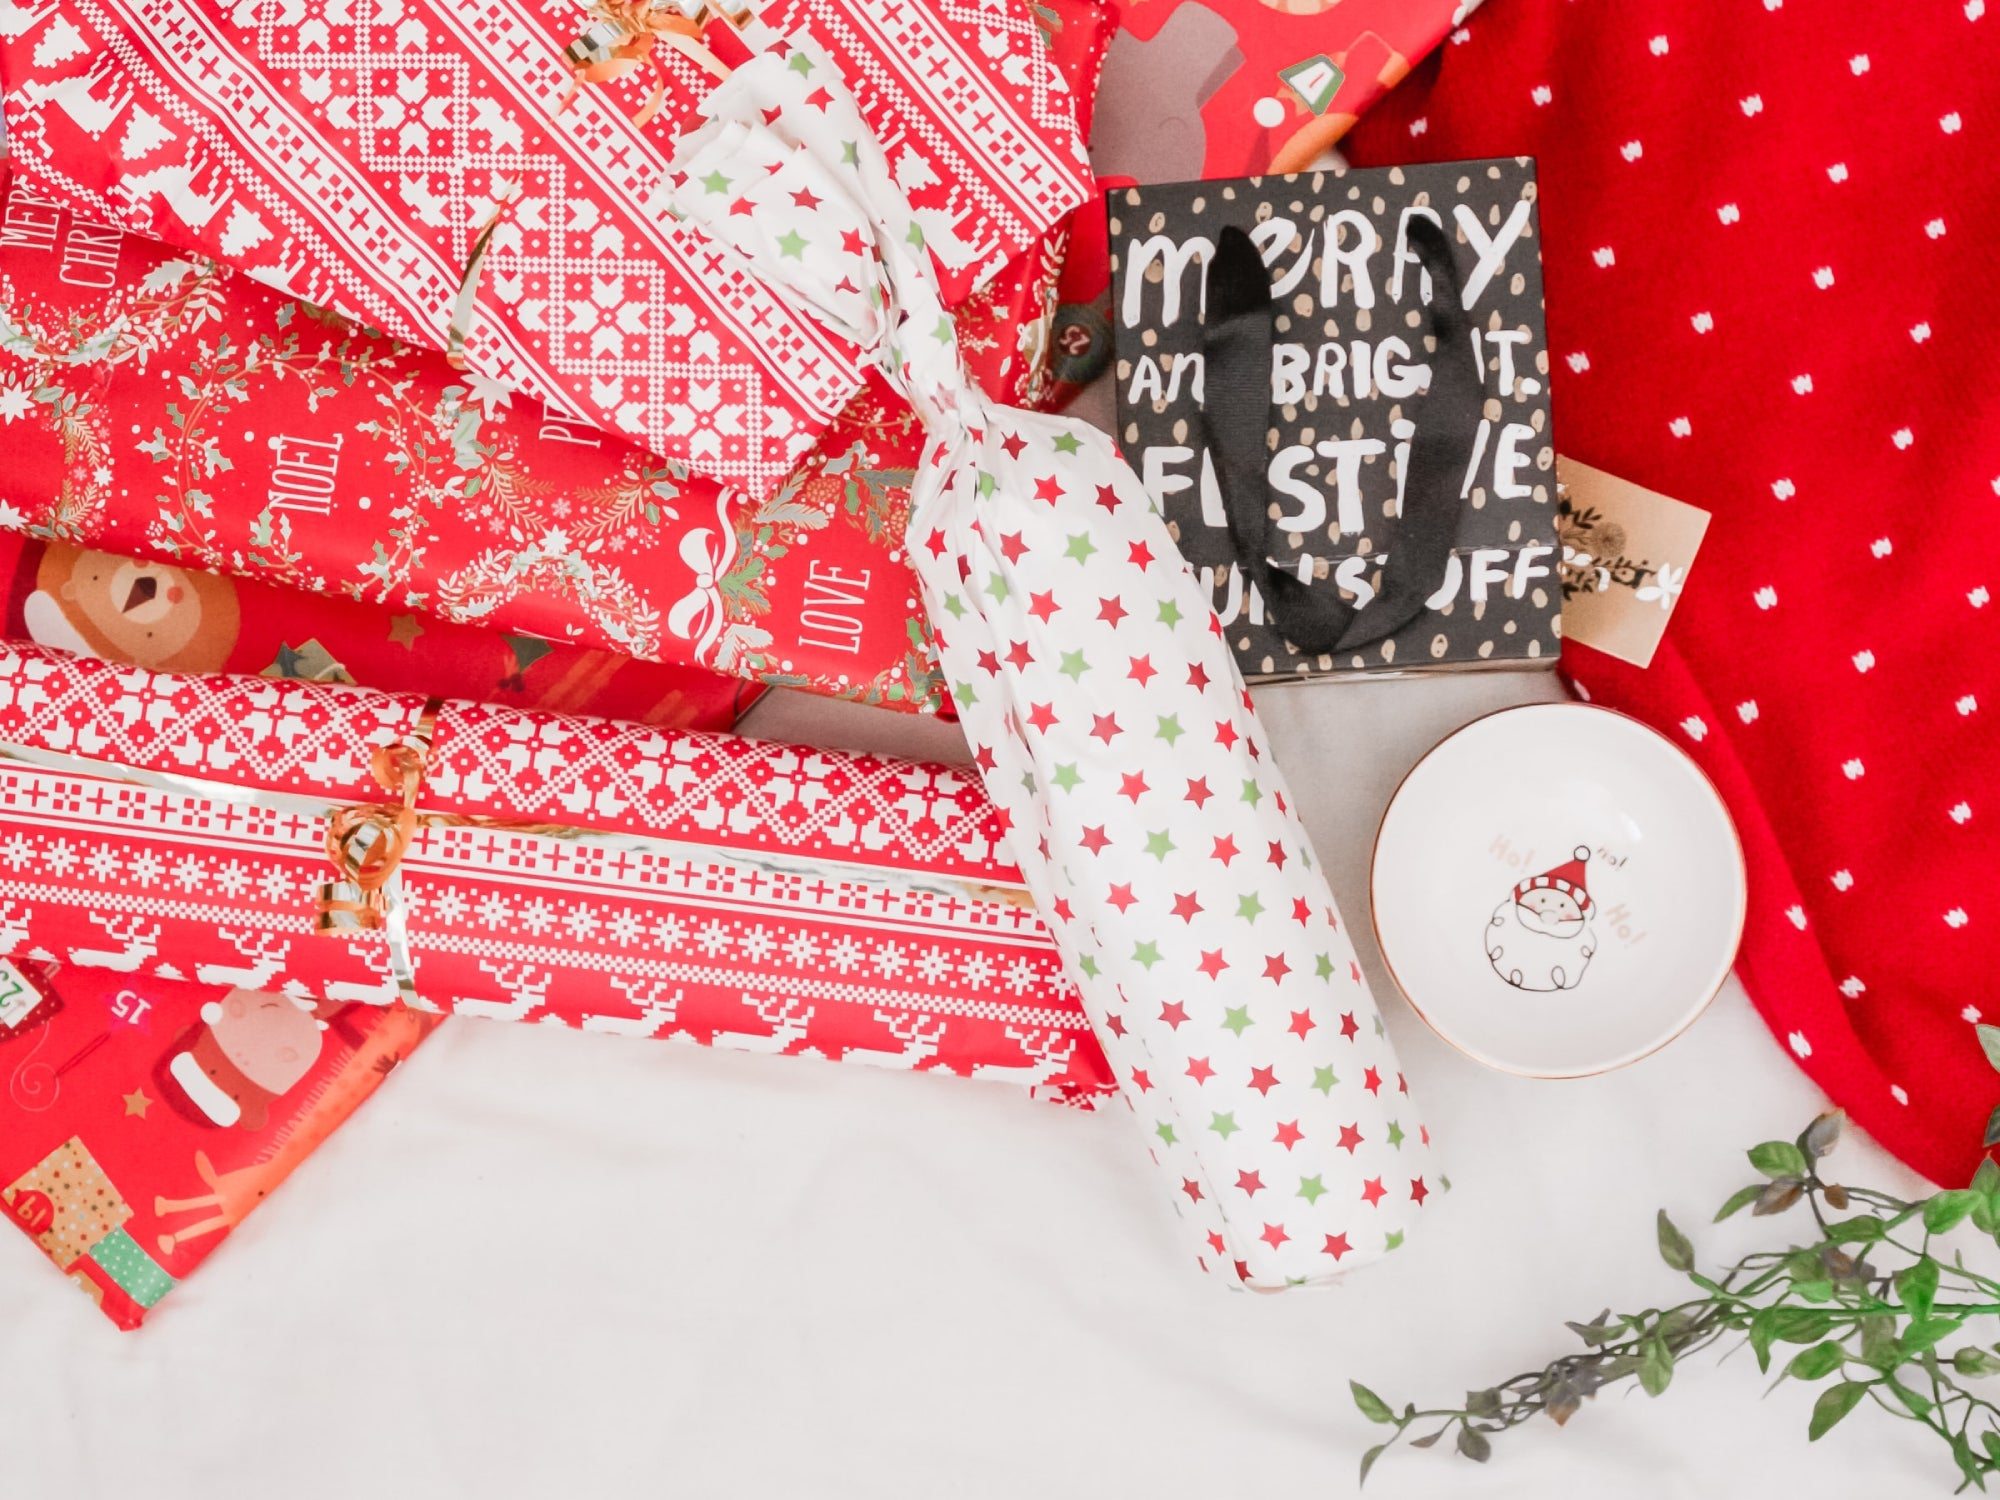 a photo of wrapping paper and a Christmas gift shaped like a cylinder